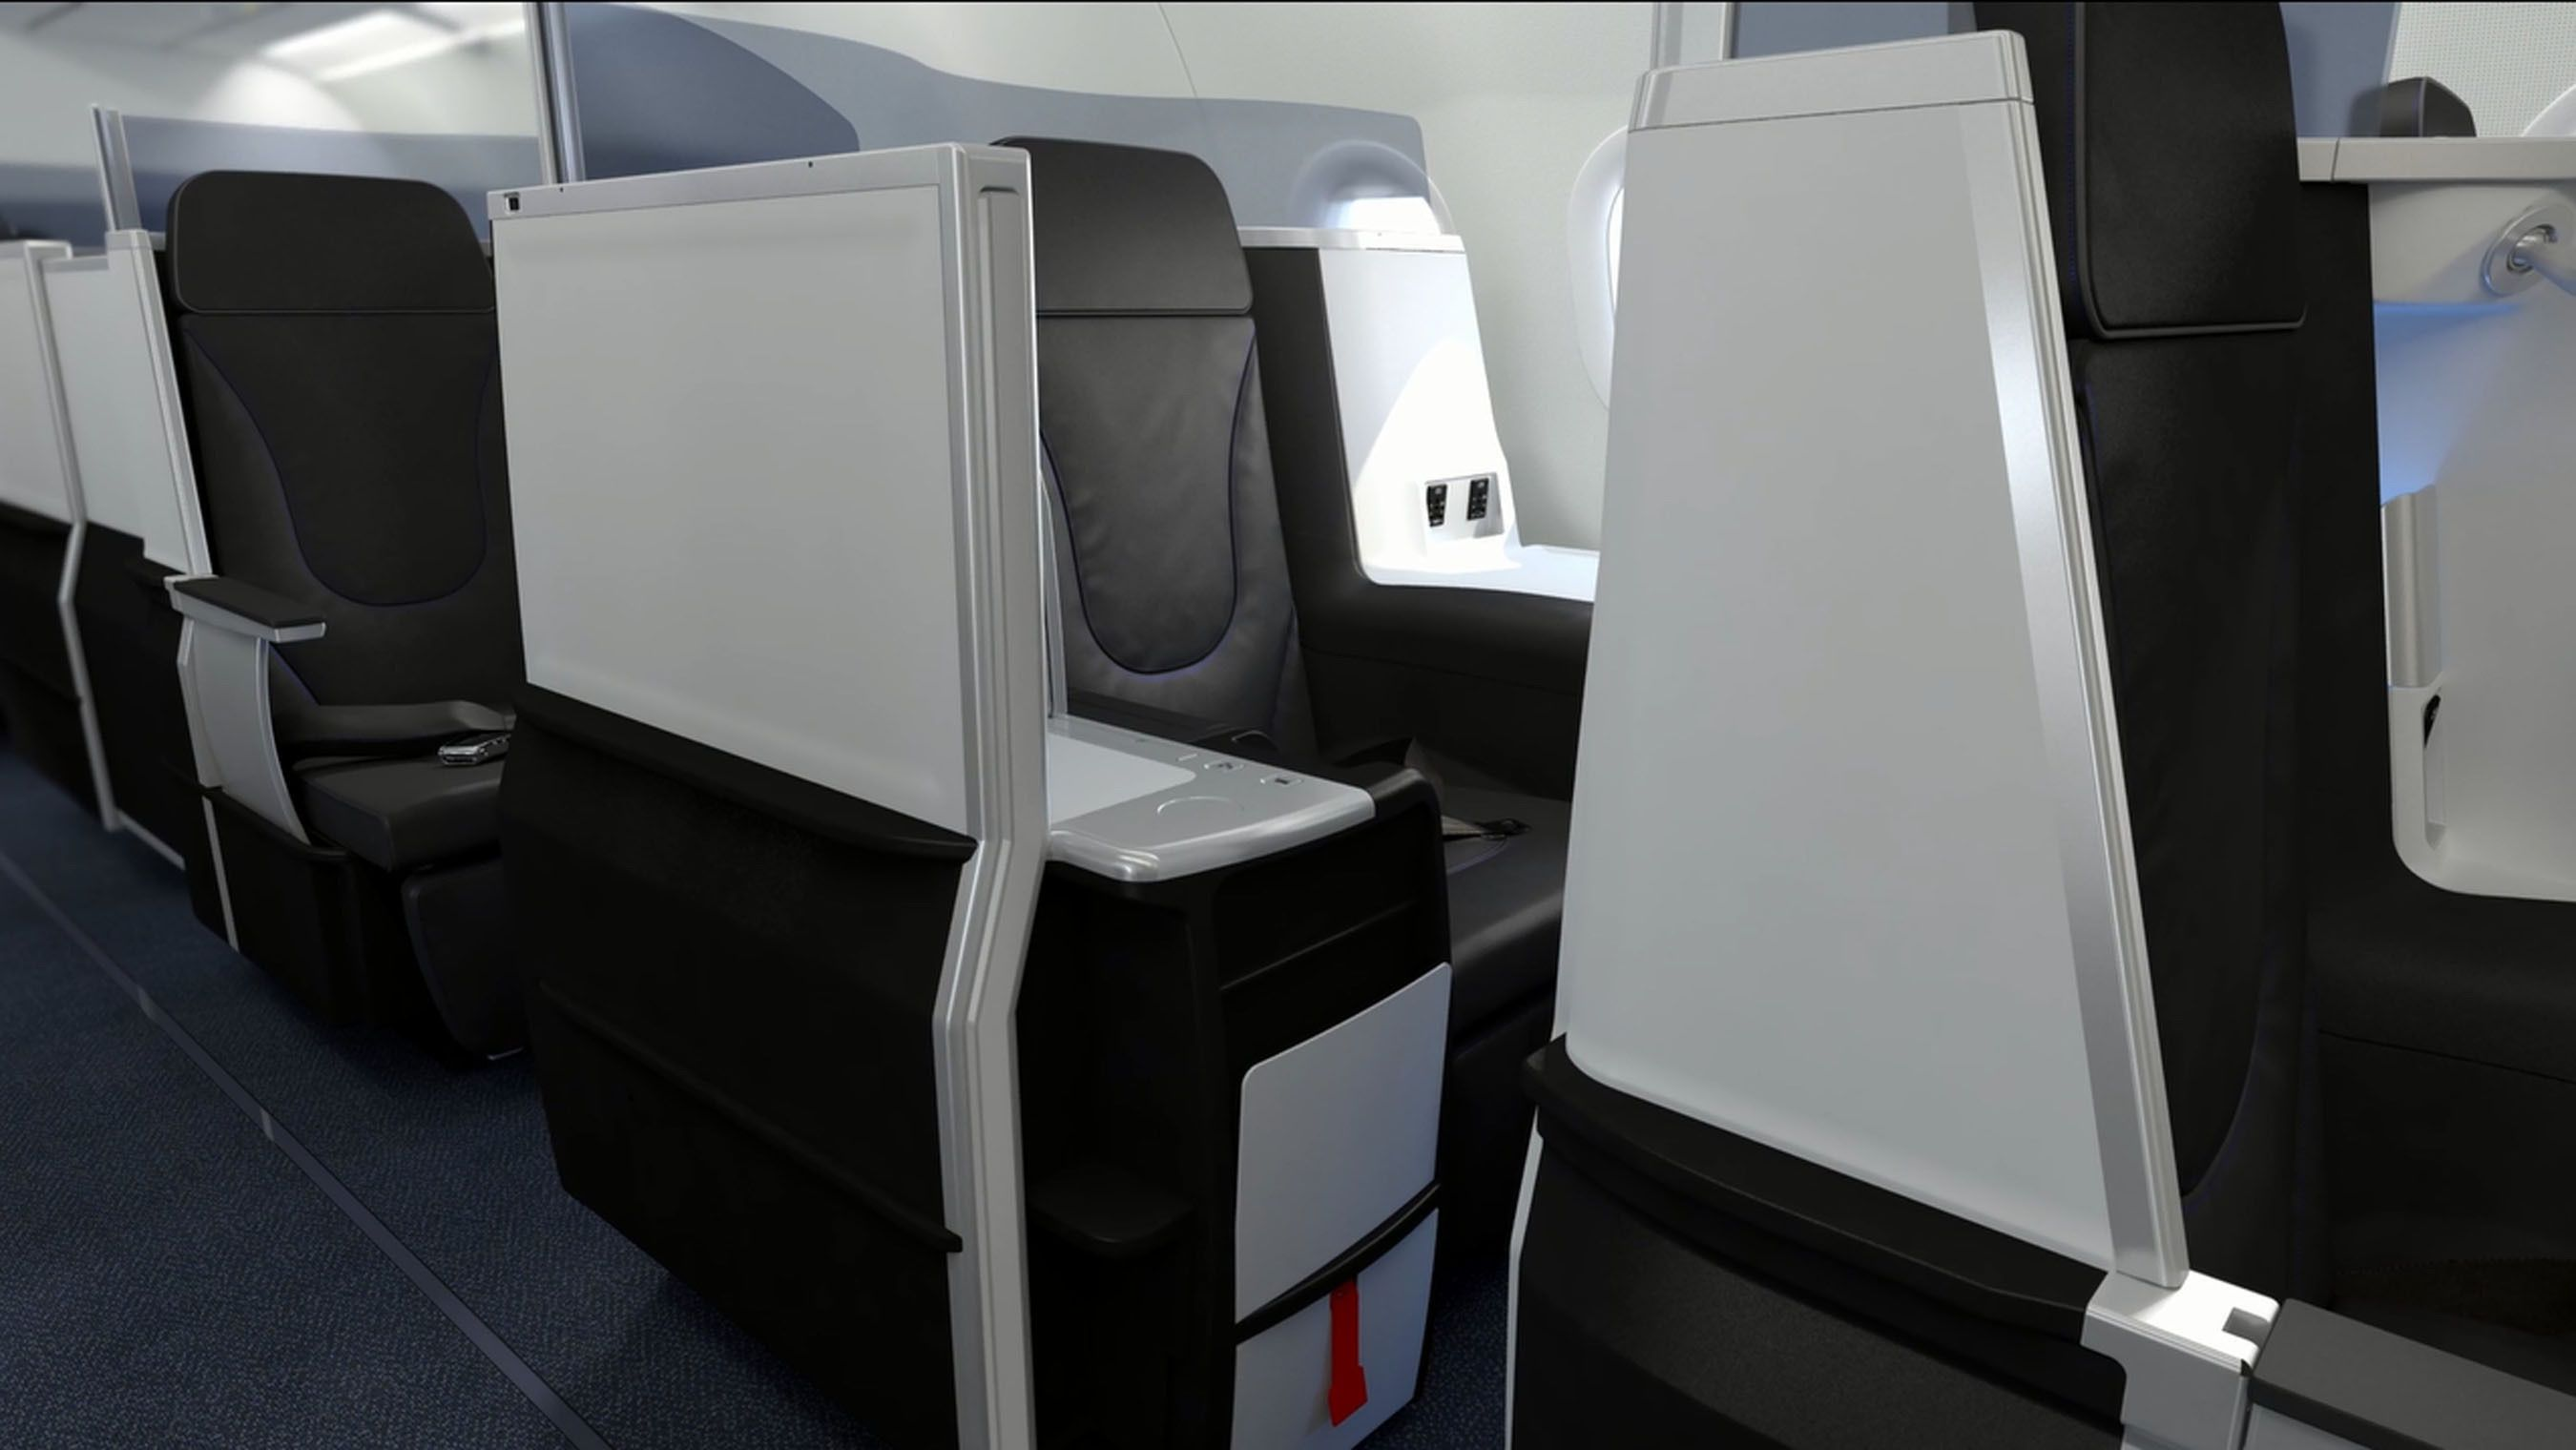 JetBlues Premium Mint Service Expands To Boston In 2016